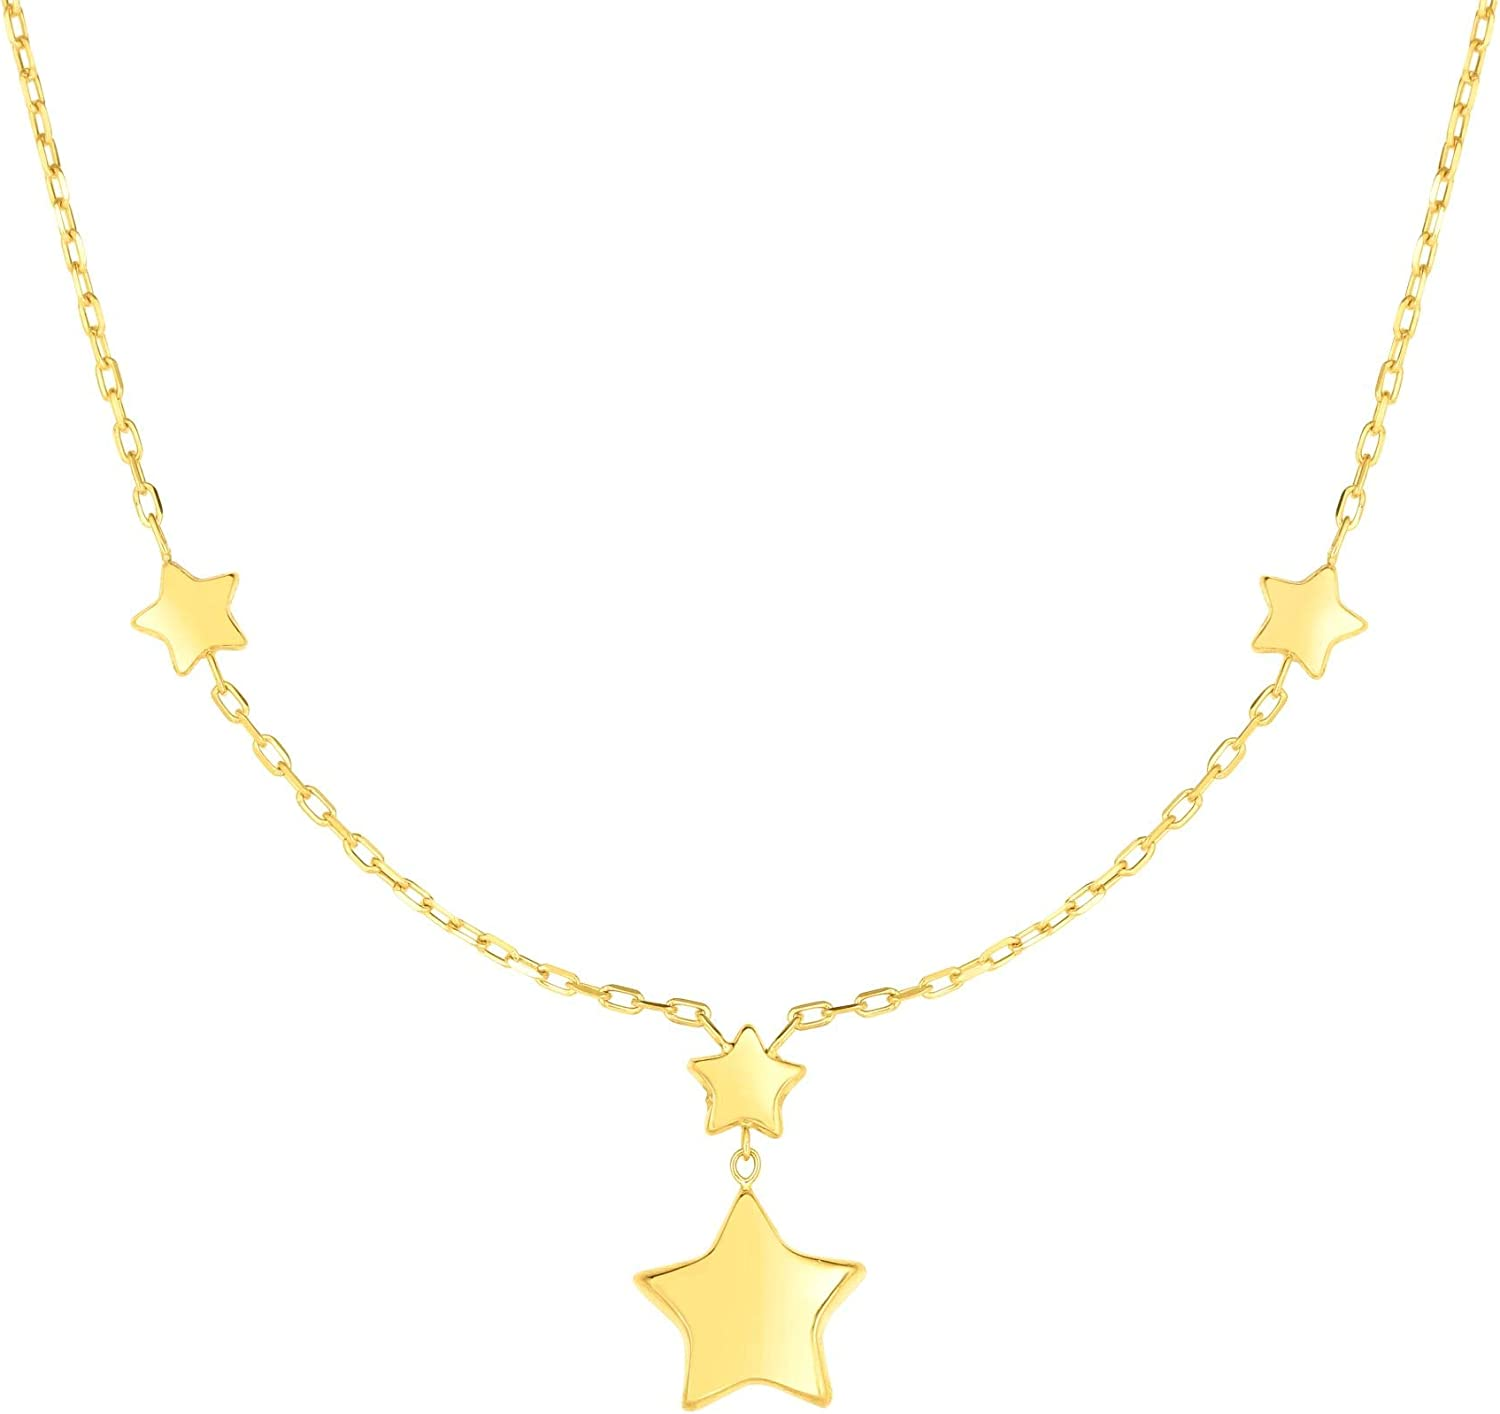 14K Yellow Gold Finish Chain 17 with Drop Element Shiny Star Fancy Necklace Lobster Clasp by IcedTime